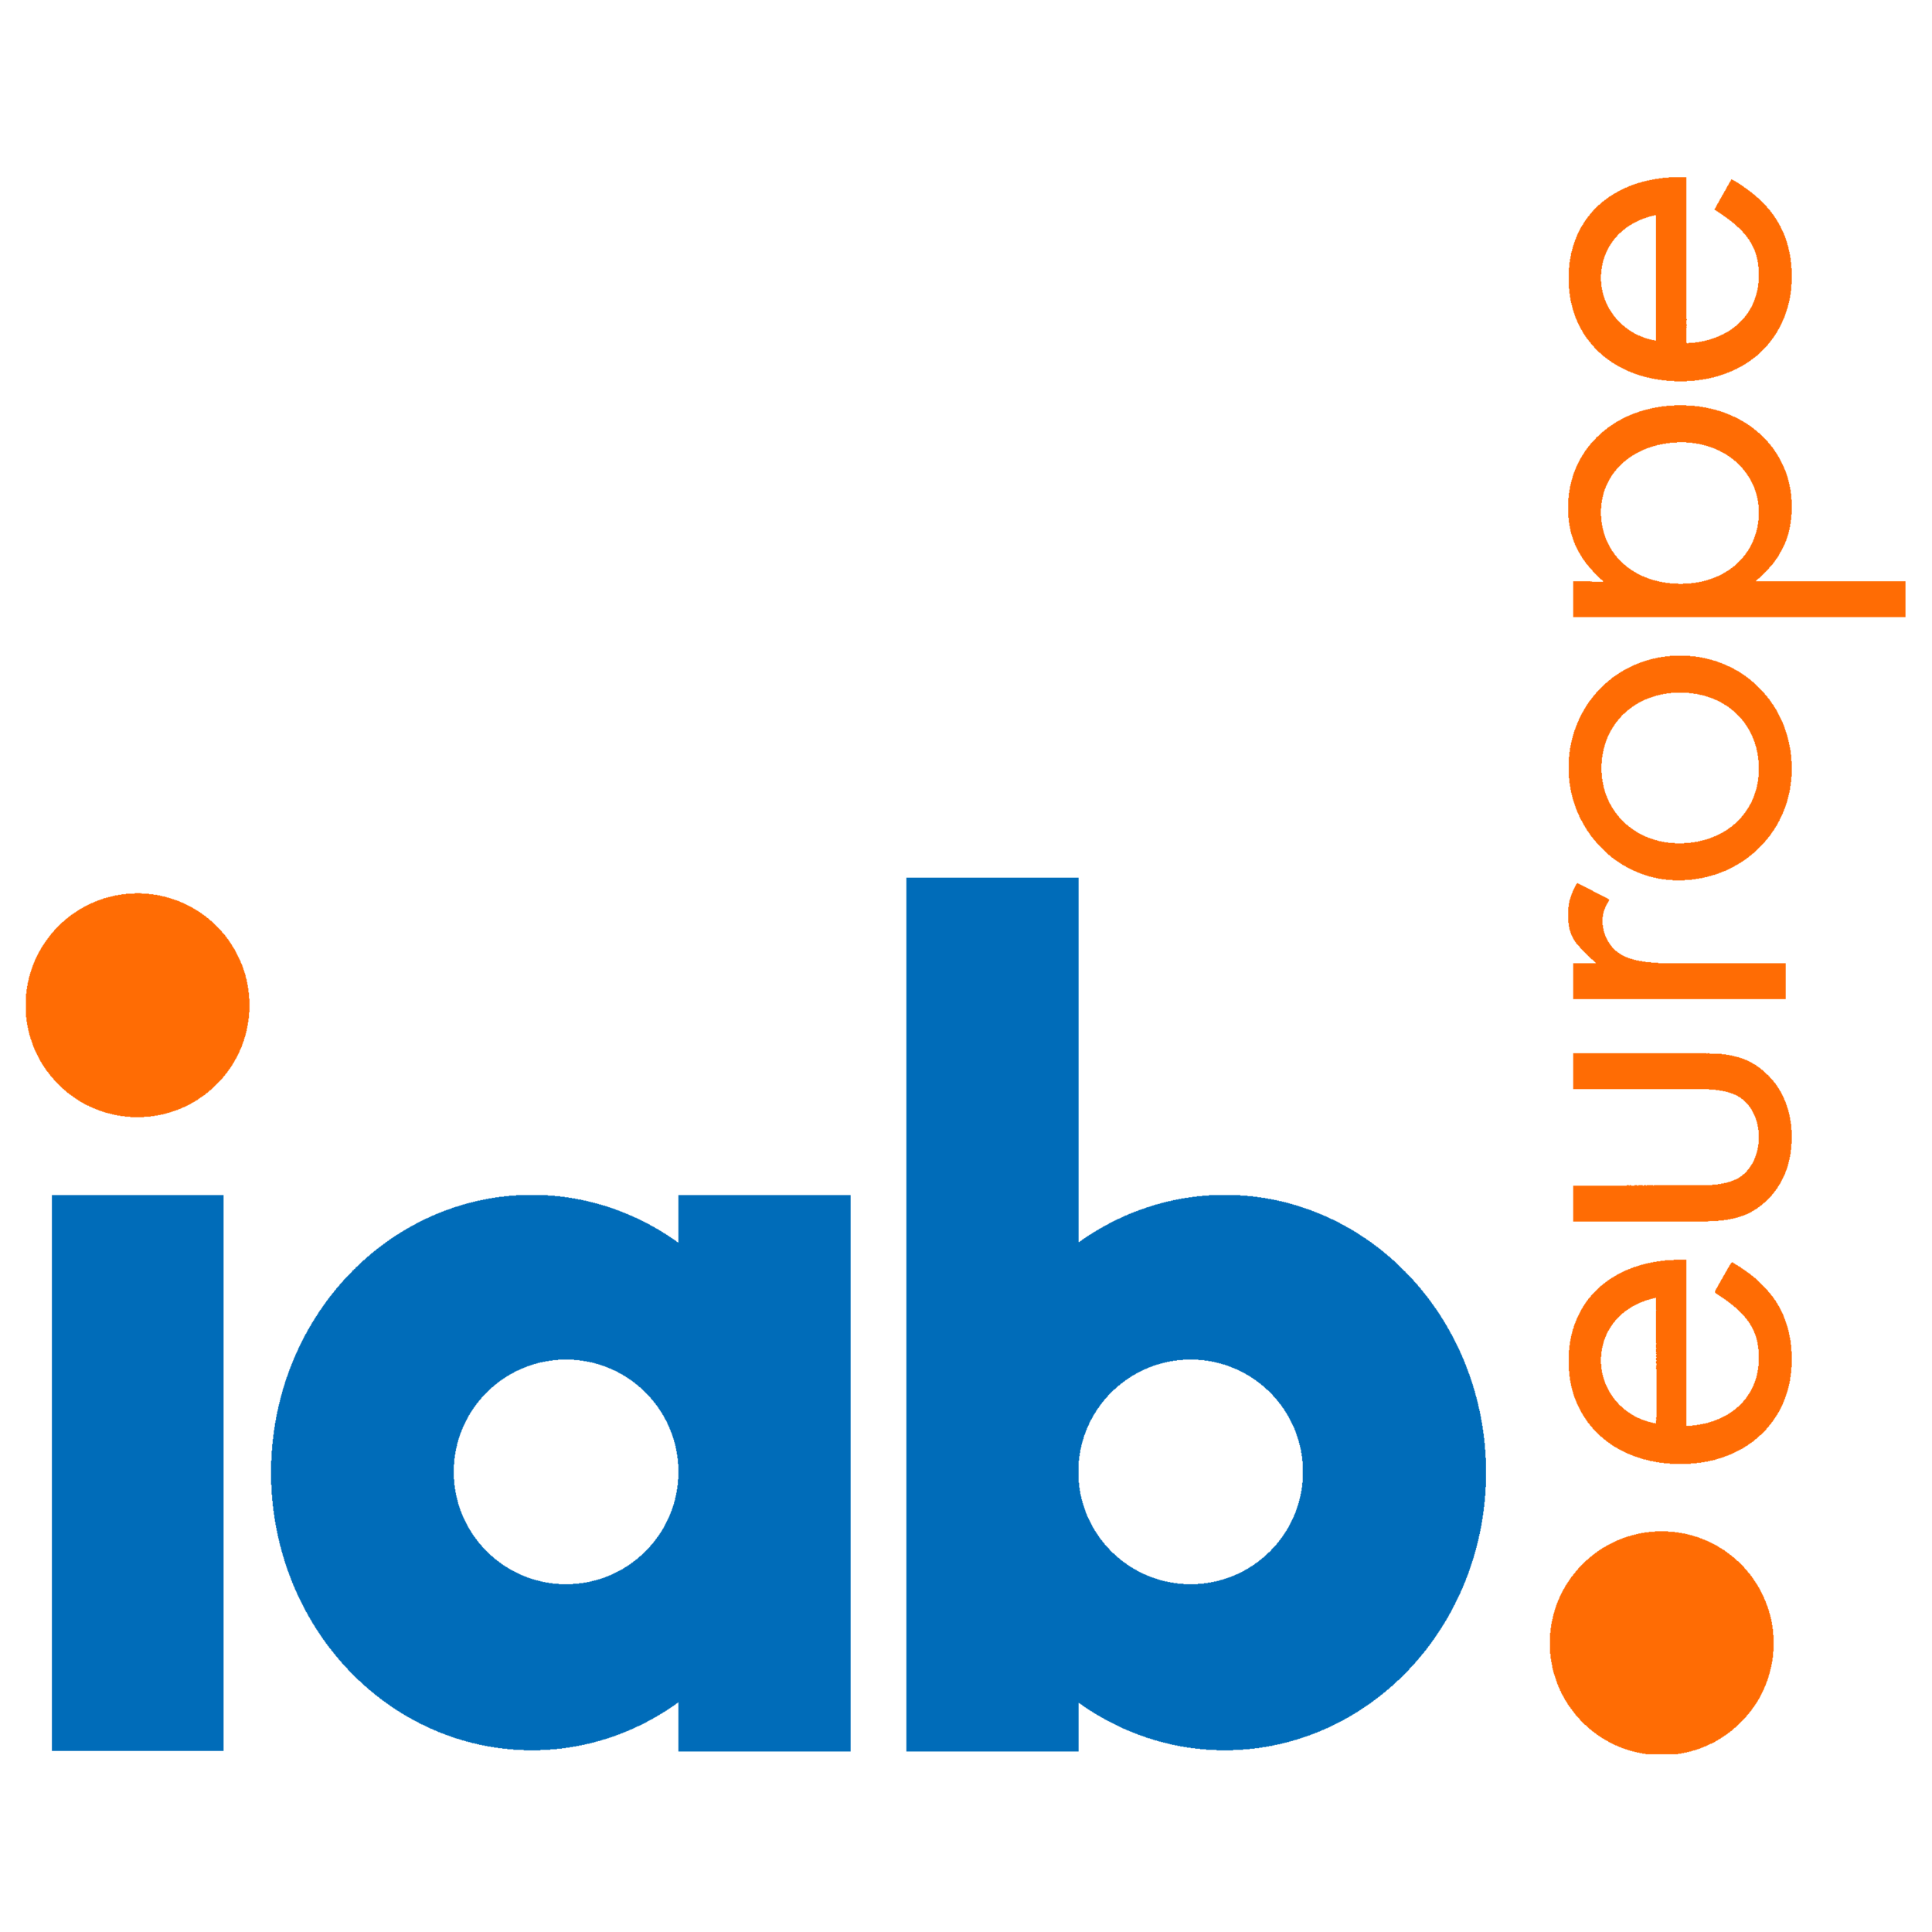 iabnew.png